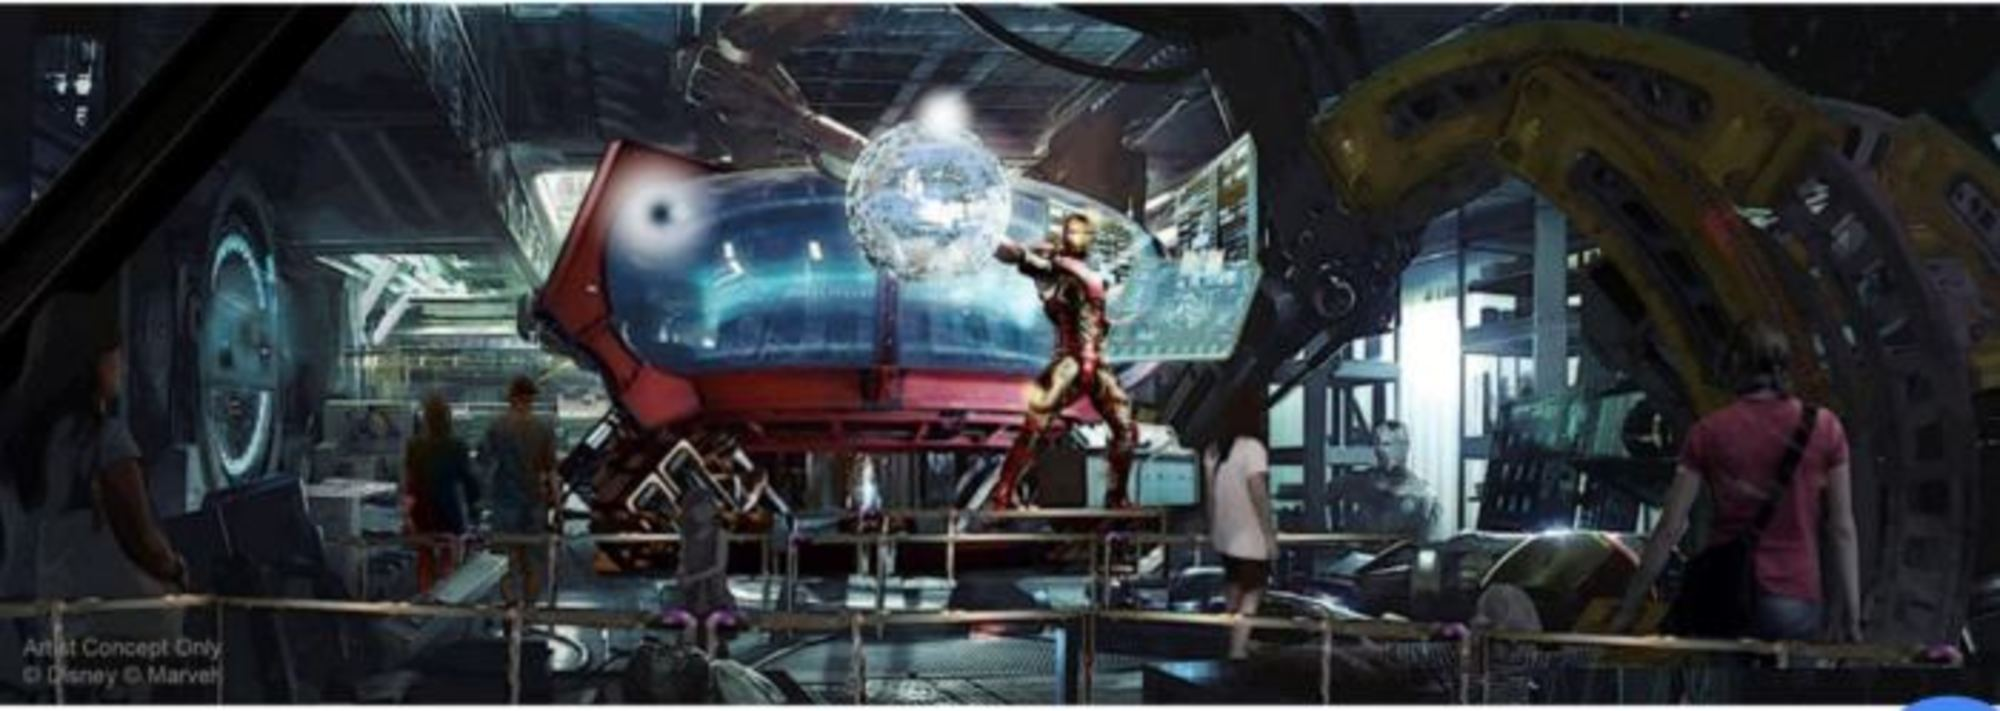 avengers campus disneyland paris